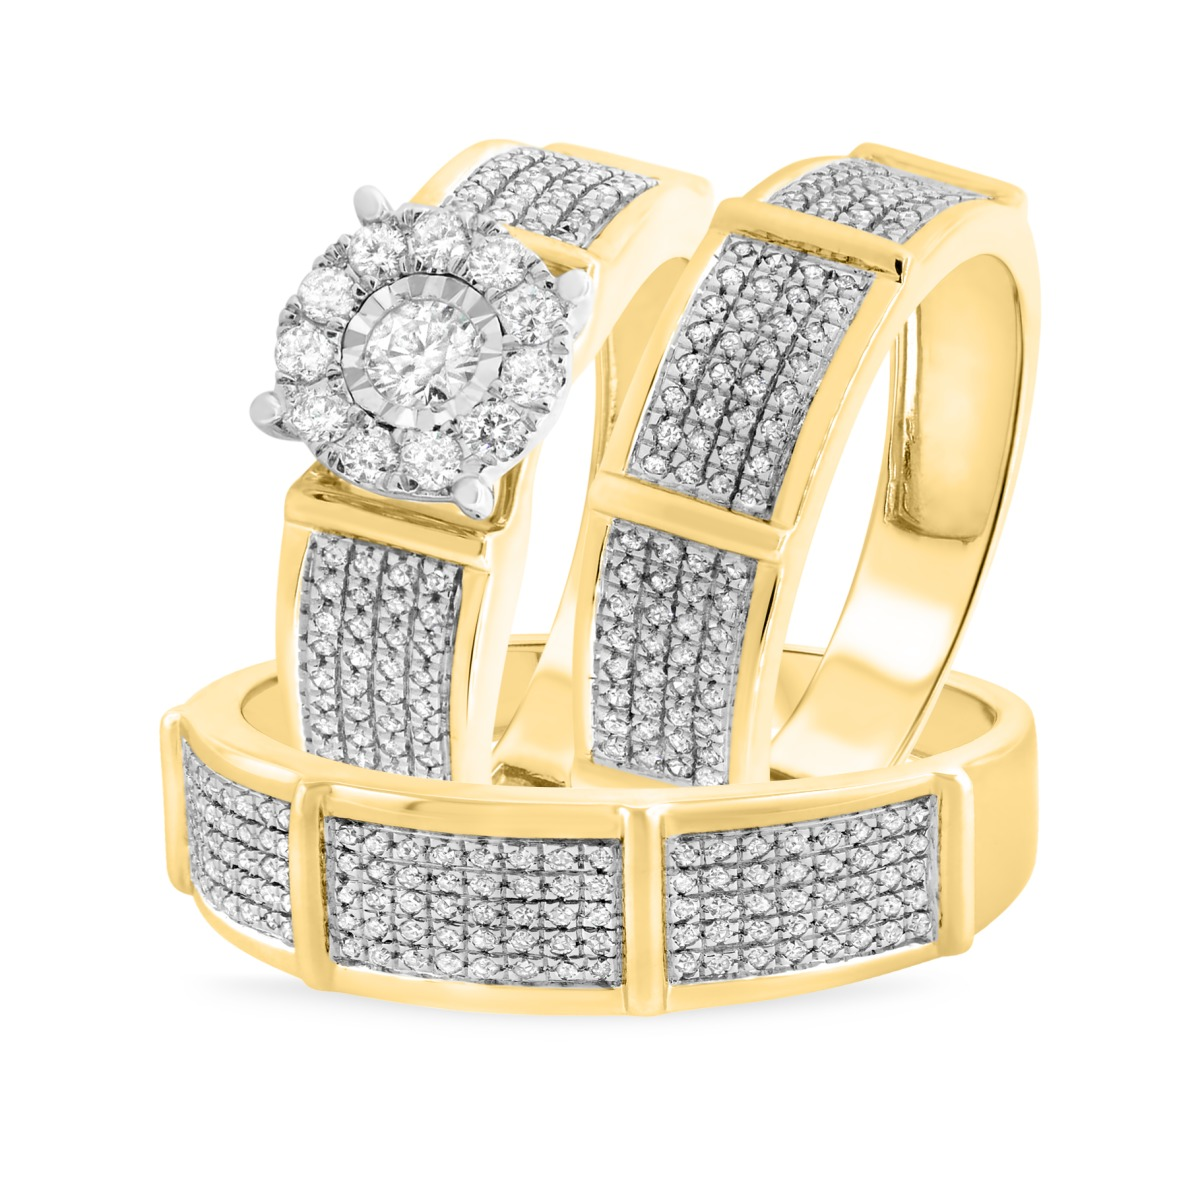 1 CT. T.W. Diamond Trio Matching Wedding Ring Set 14K Yellow Gold